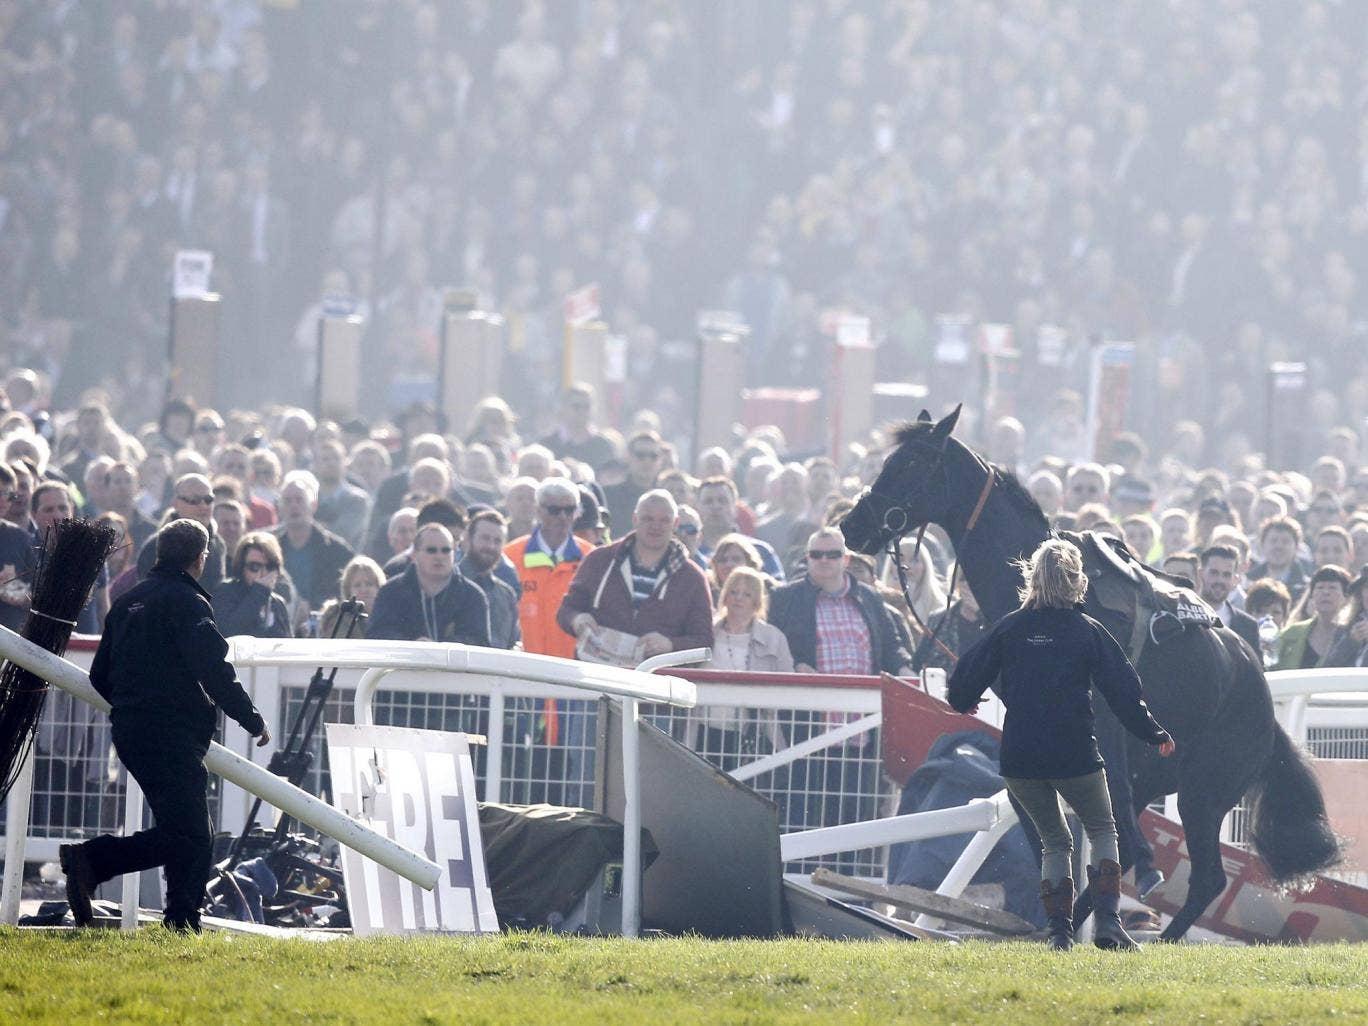 Daryl Jacob was taken to hospital after being thrown through the rails by Port Melon